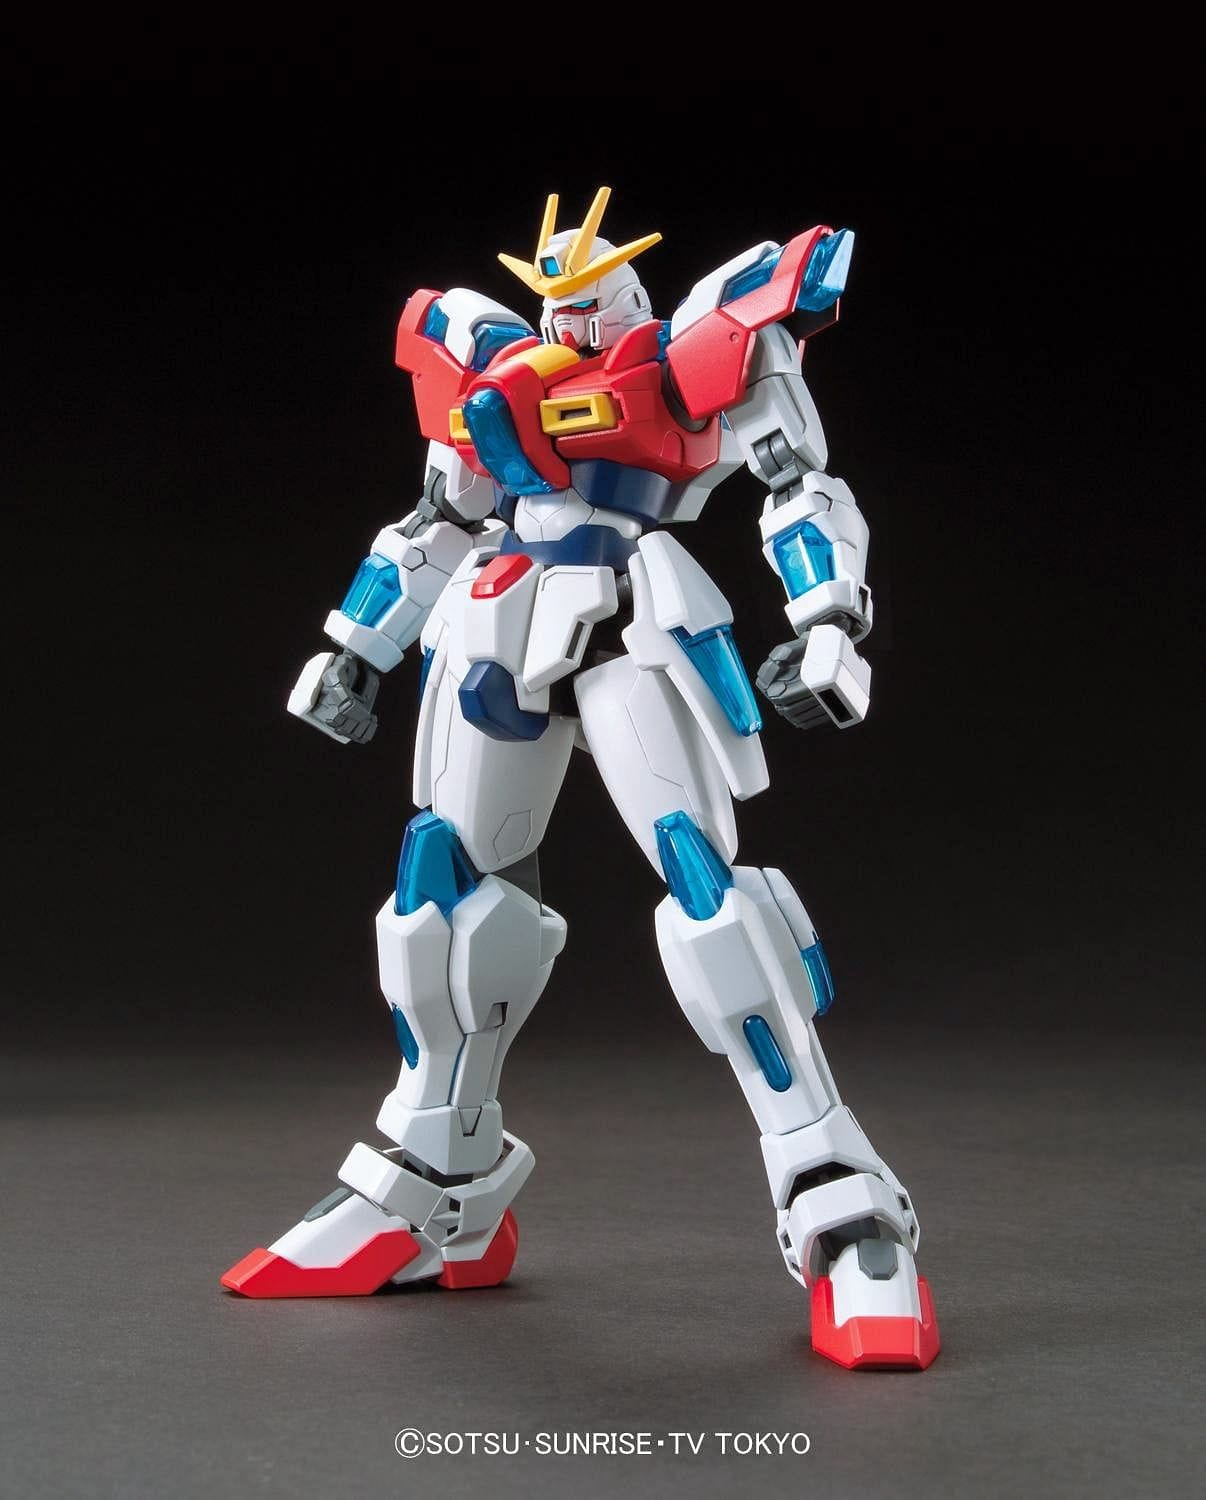 BANDAI 5055437: #28 Try Burning Gundam ""